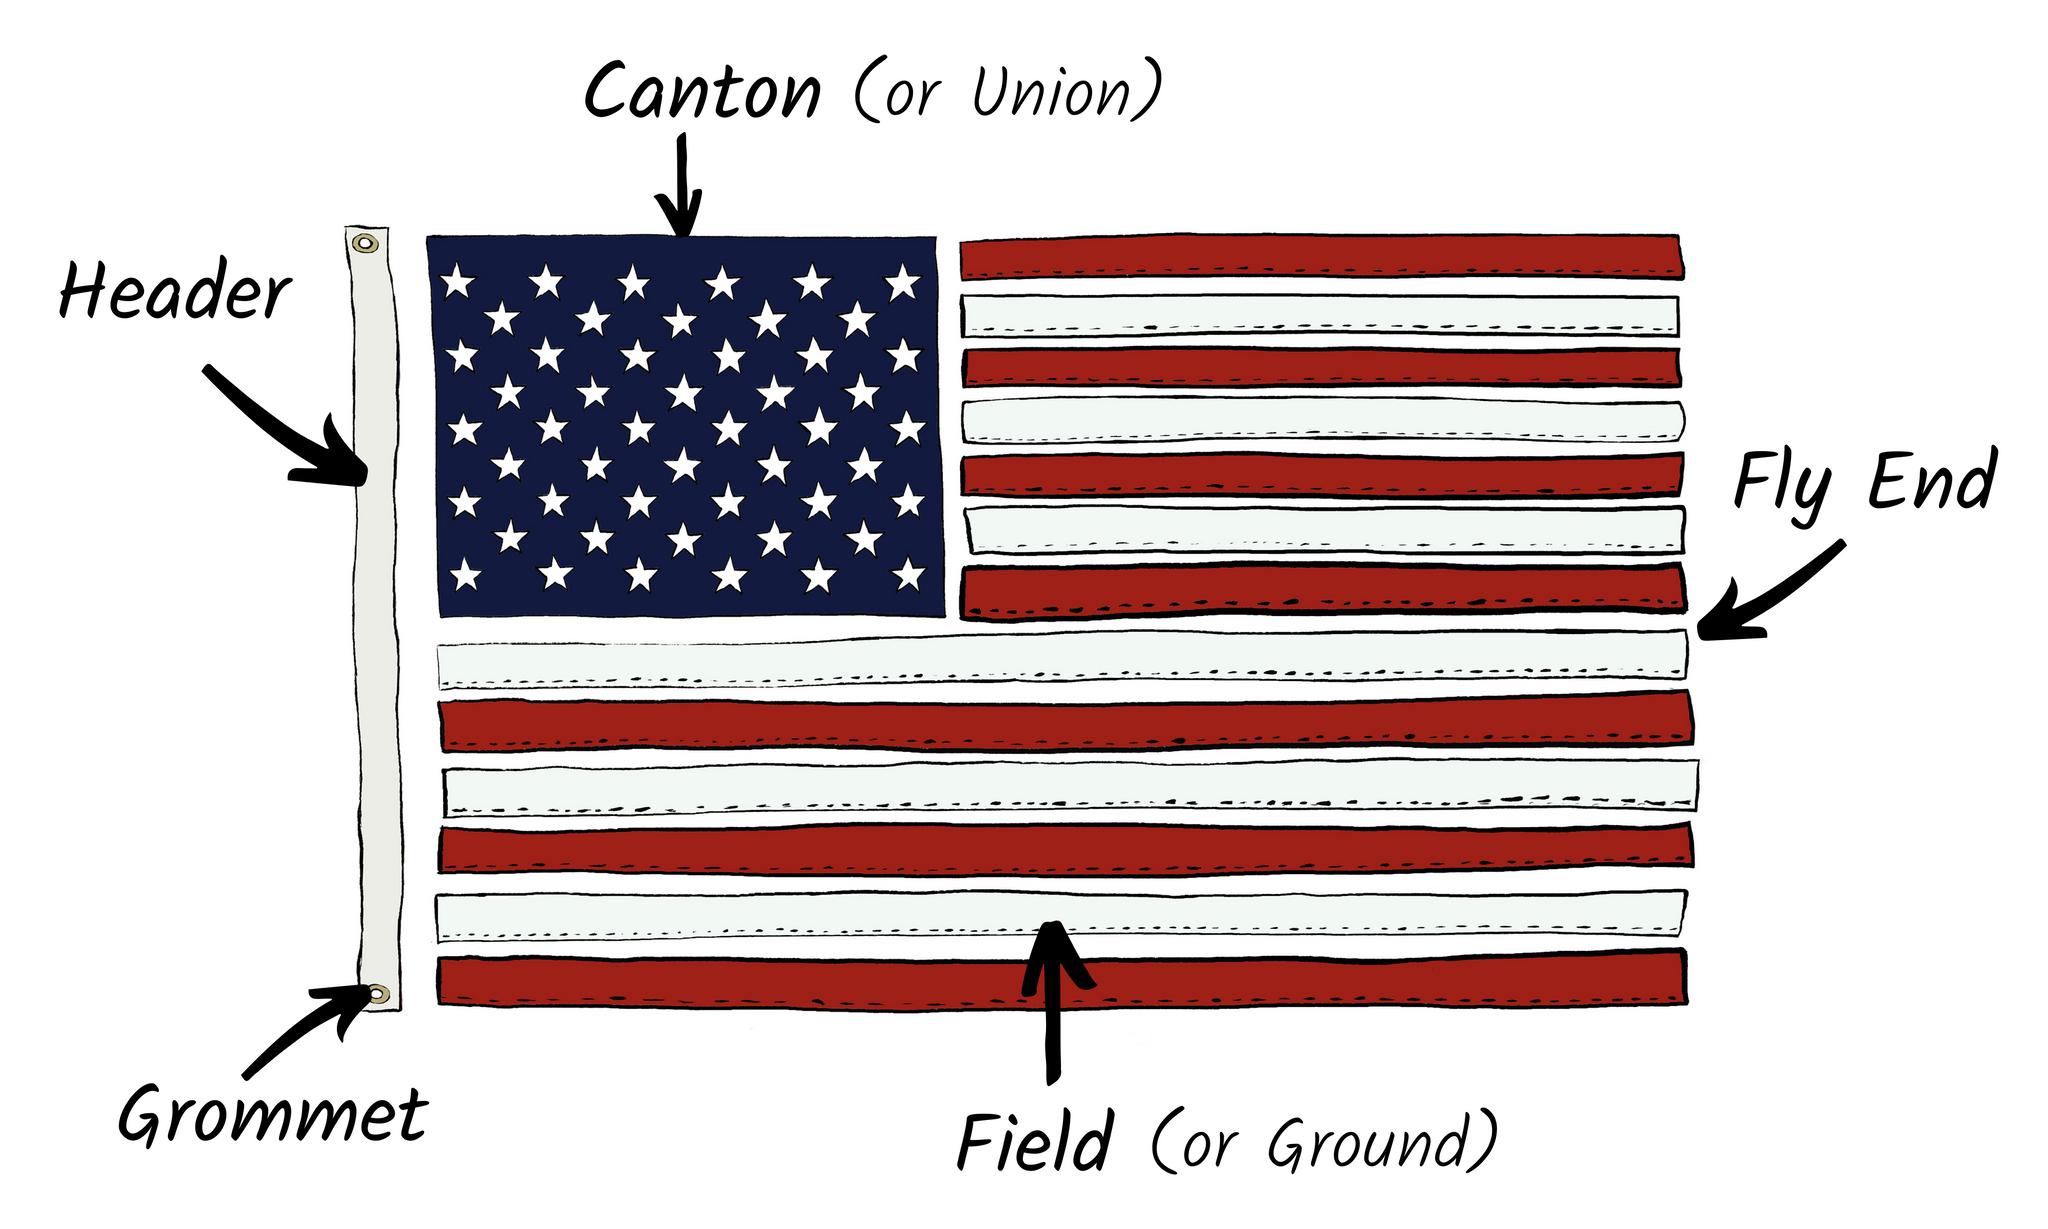 Parts of the American Flag illustration